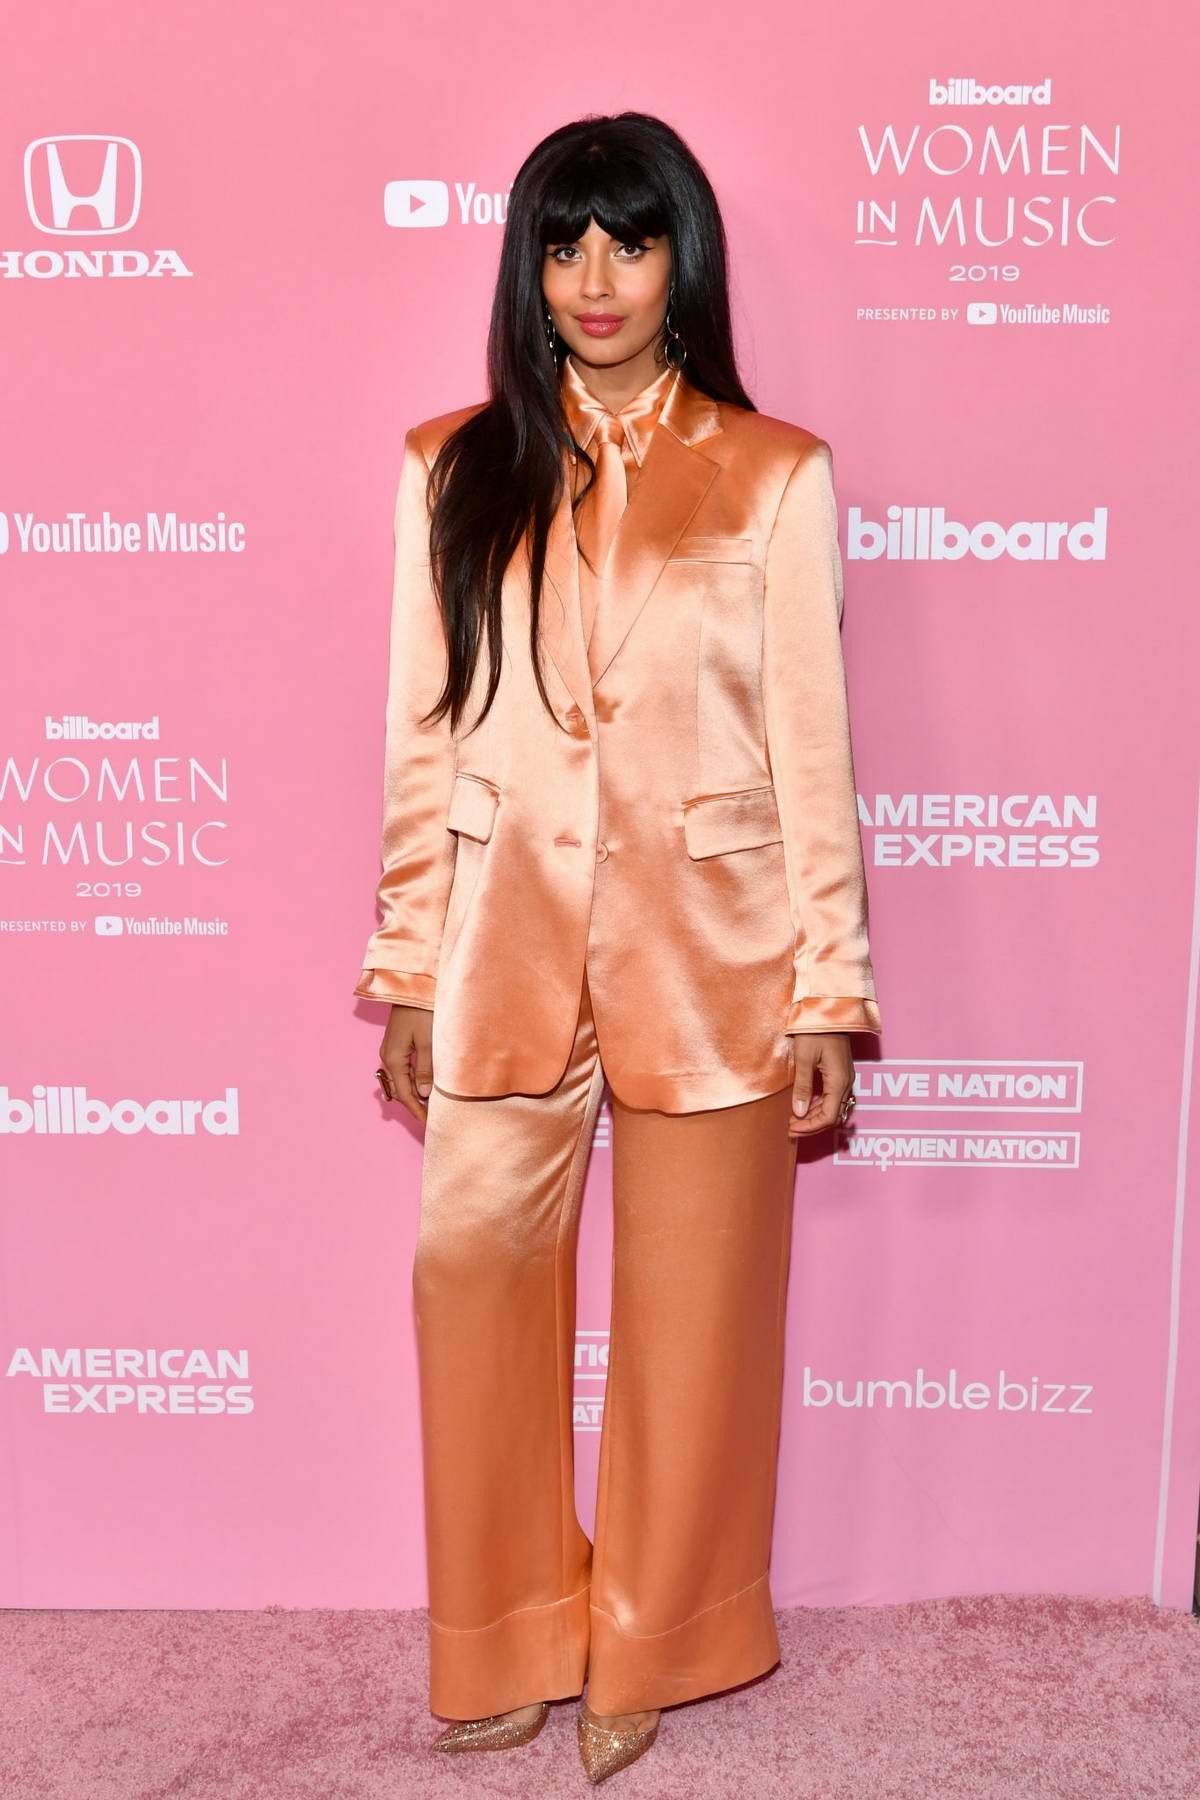 Jameela Jamil attends the 2019 Billboard Women in Music at Hollywood Palladium in Los Angeles